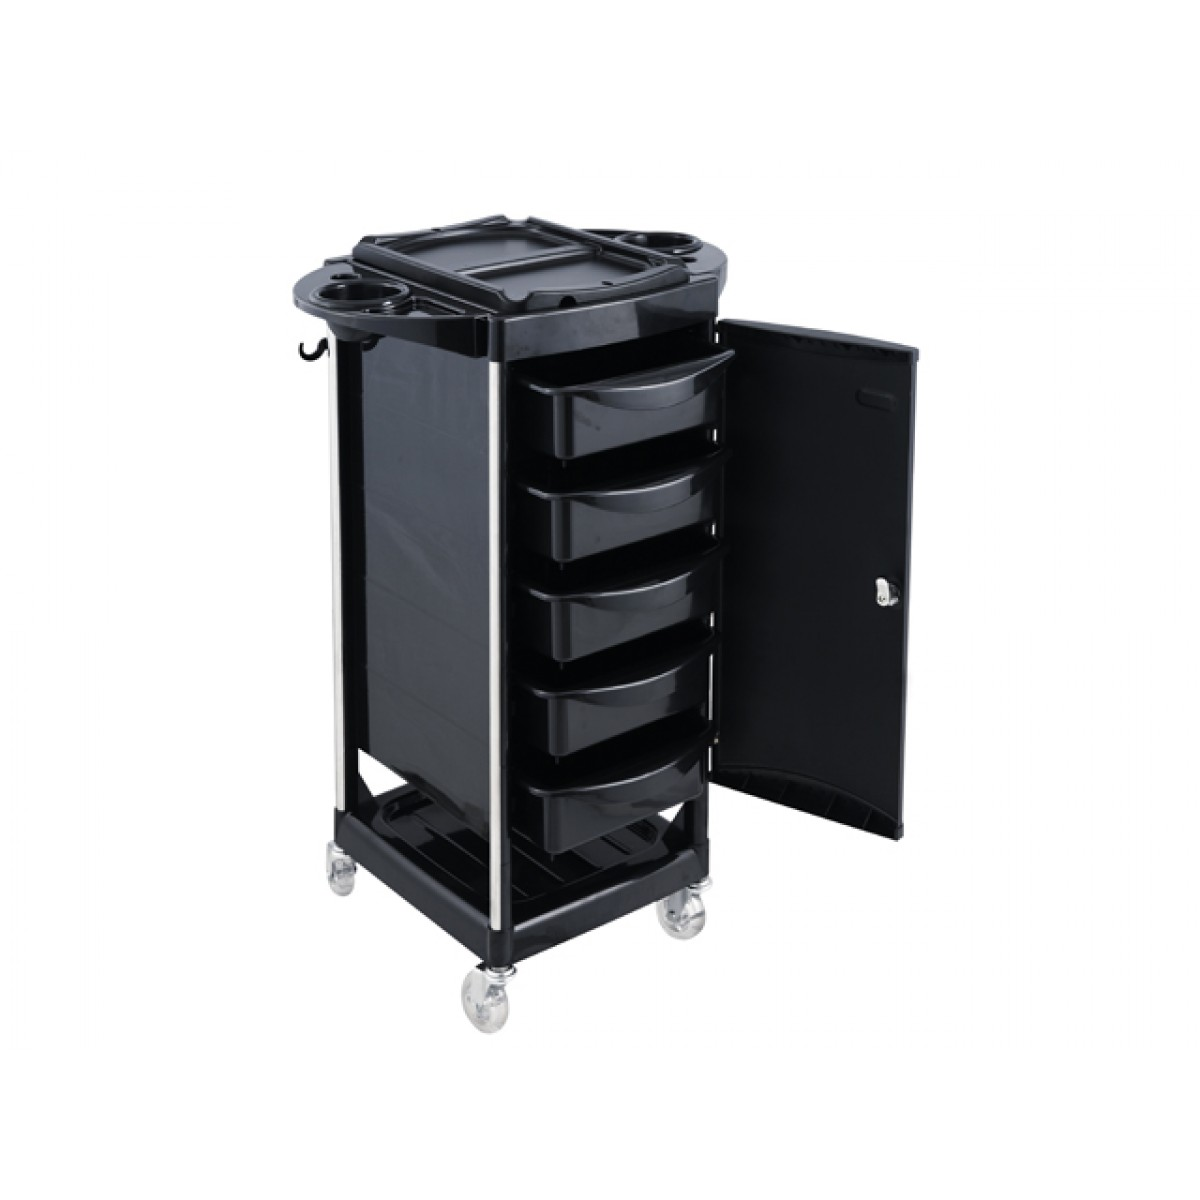 """TACANA"" Multi-function Salon Trolley Storage Cart"